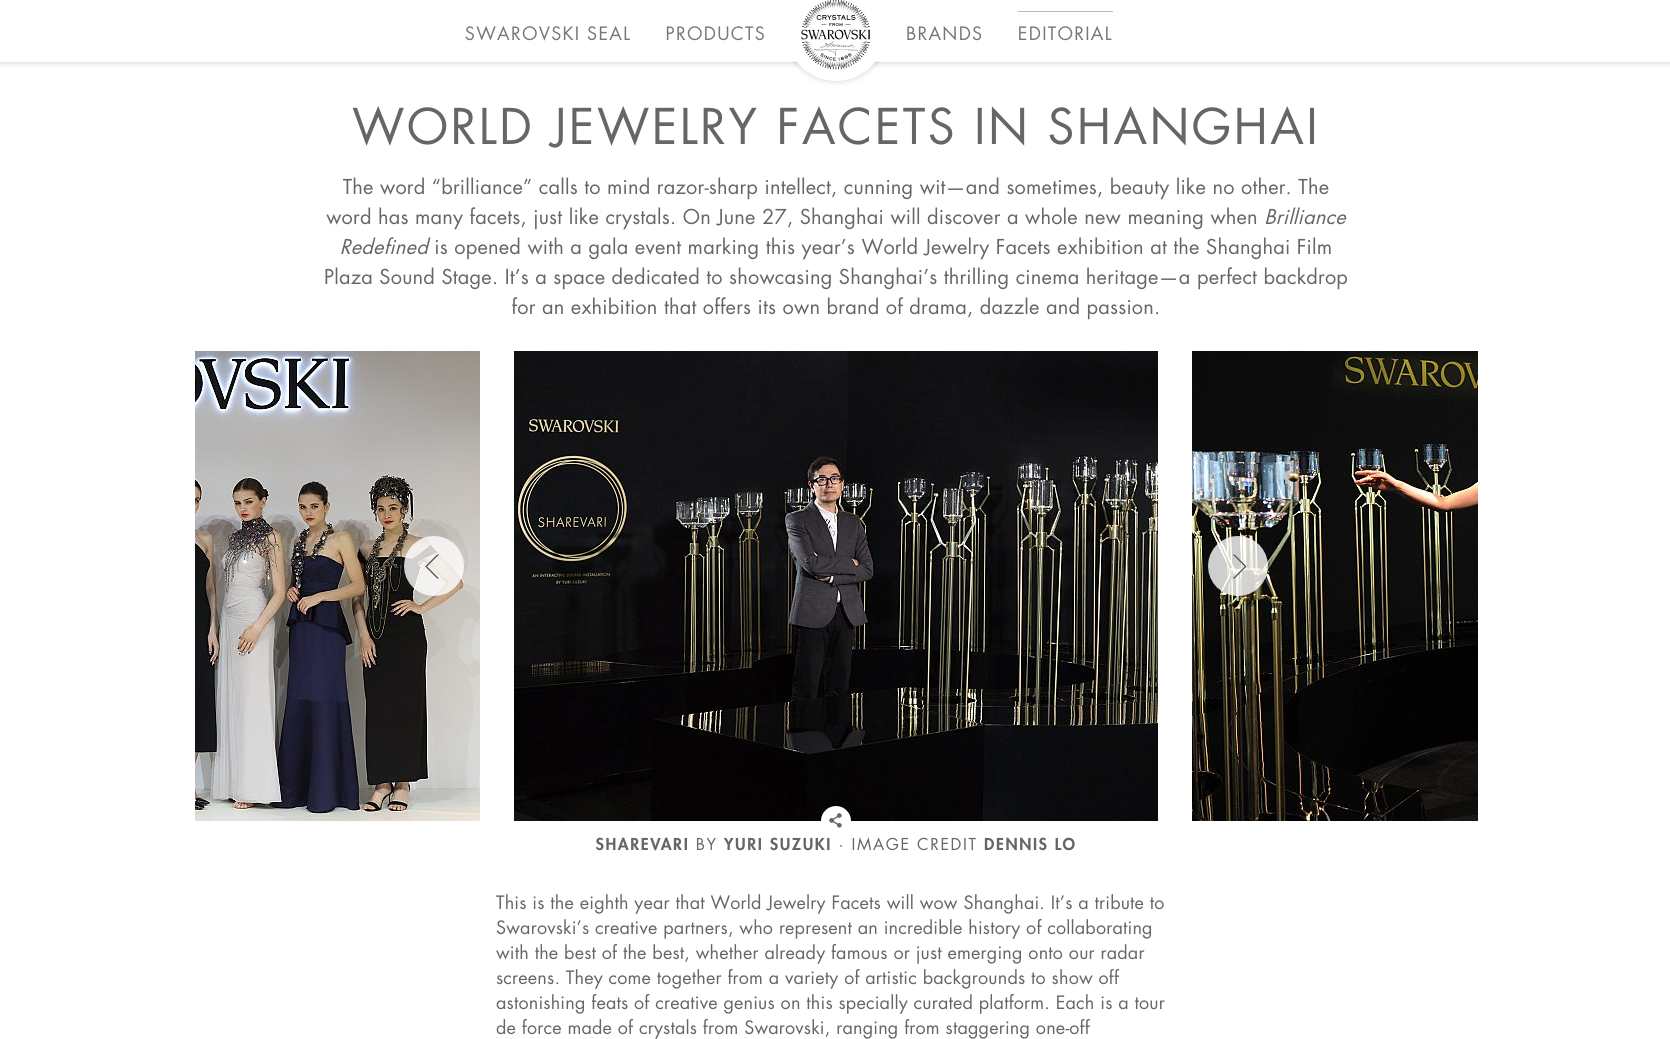 FORAEVA_WORLD JEWELRY FACETS_CRYSTALS FROM SWAROVSKI.png